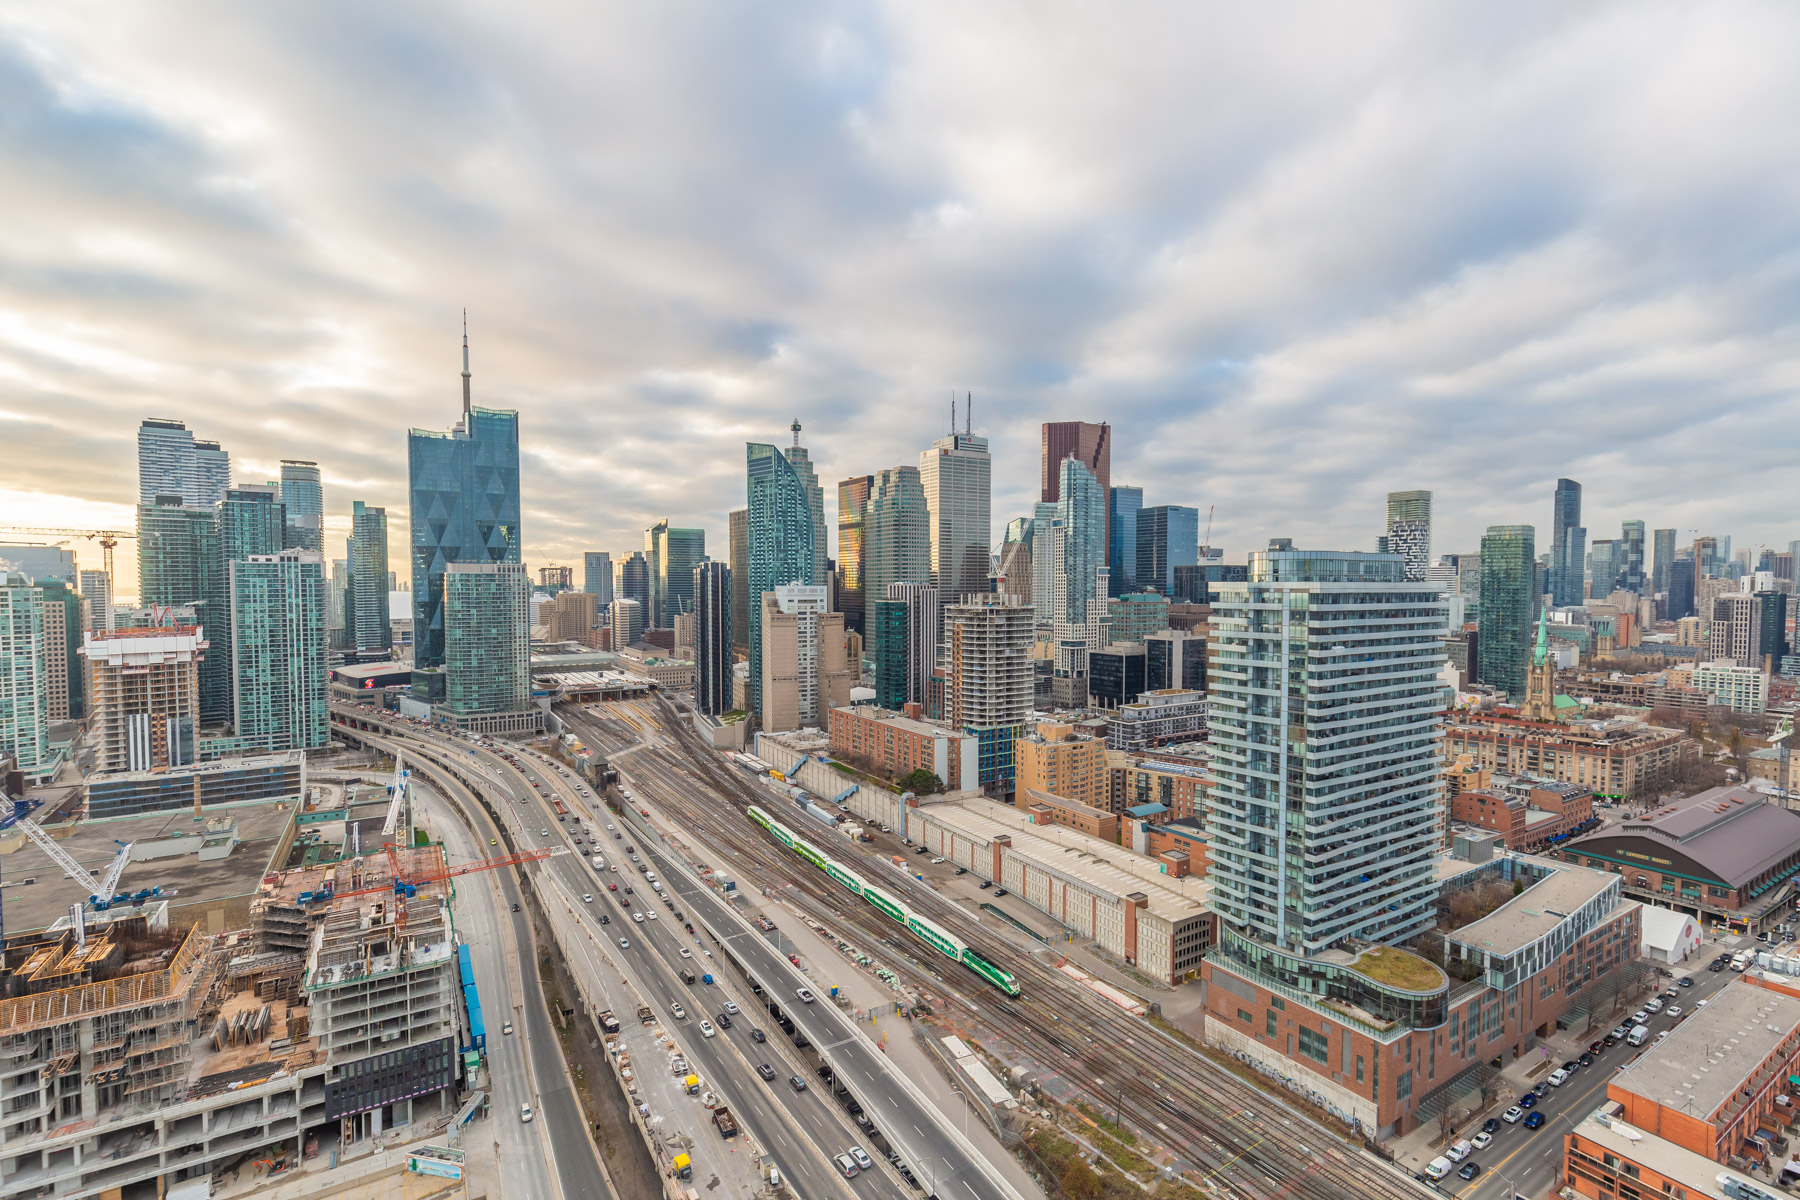 Toronto skyline with buildings, CN Tower needle, construction, highways and Go Train.